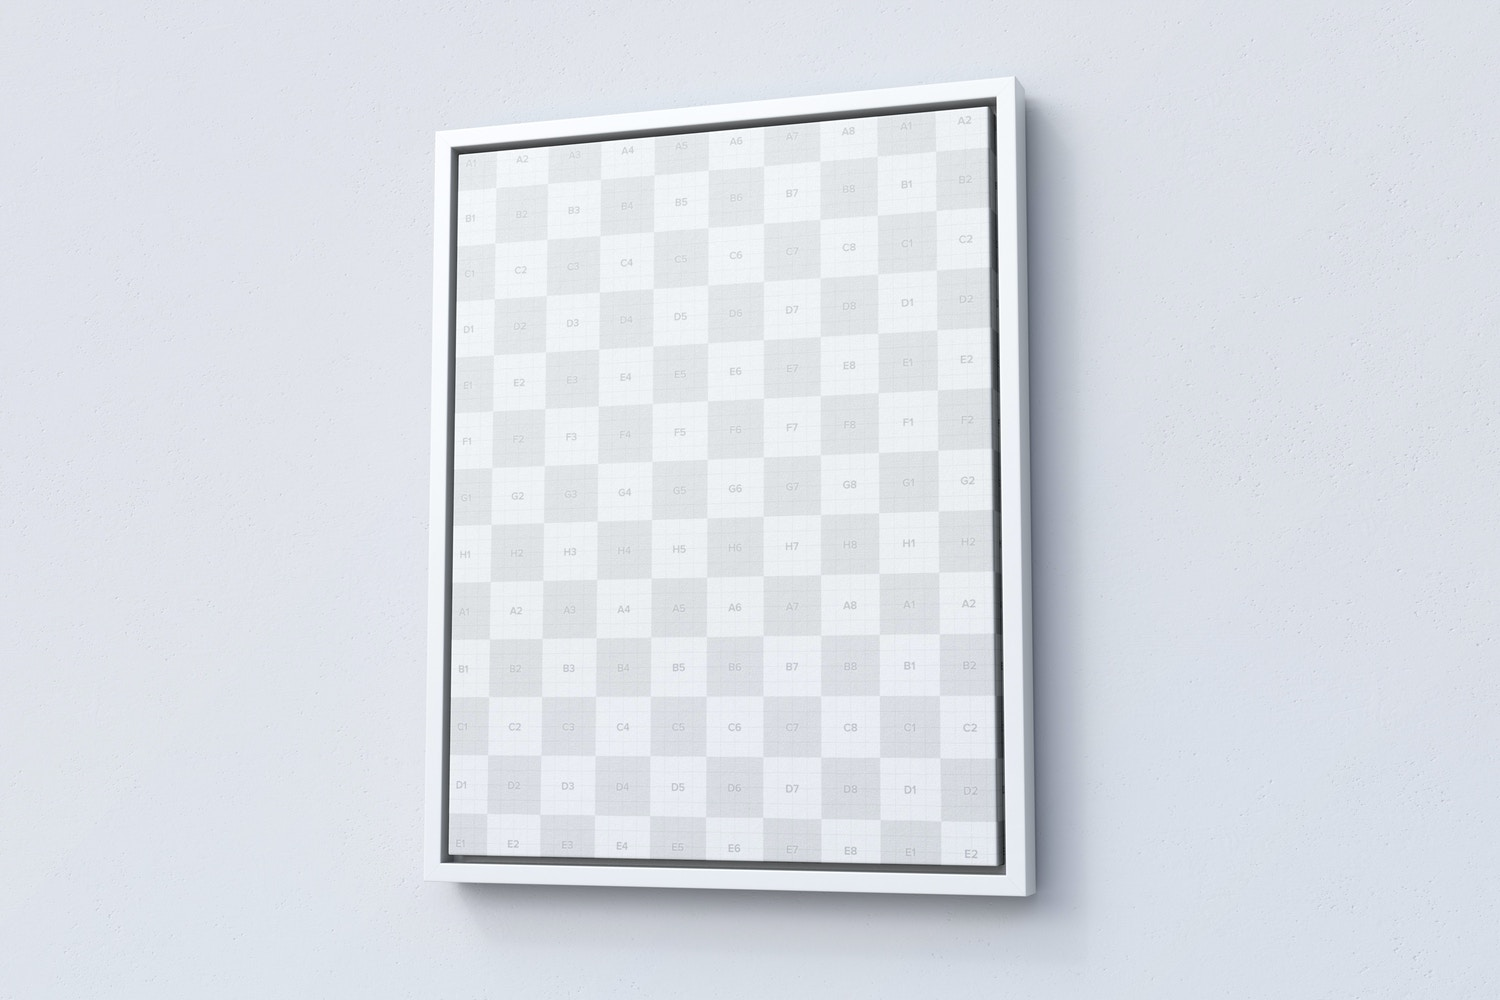 7:9 Portrait Canvas Mockup in Floater Frame, Right View